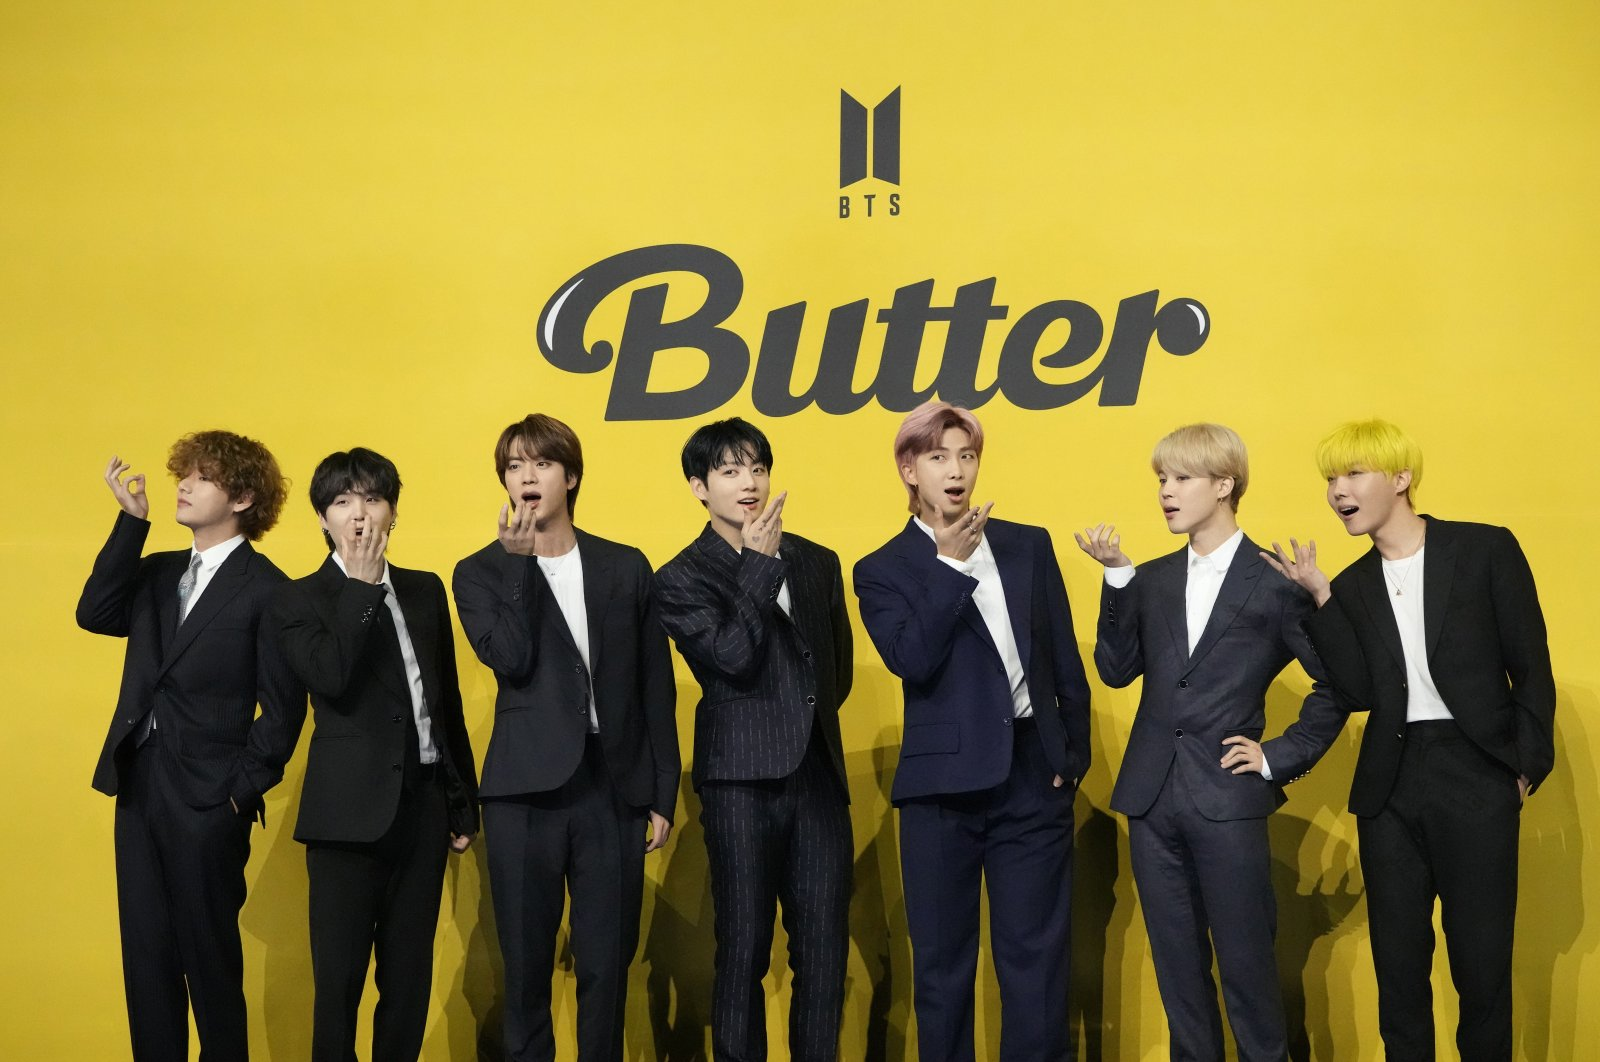 """Members of South Korean K-pop band BTS pose for photographers ahead of a press conference to introduce their new single """"Butter"""" in Seoul, South Korea, May 21, 2021. (AP Photo)"""